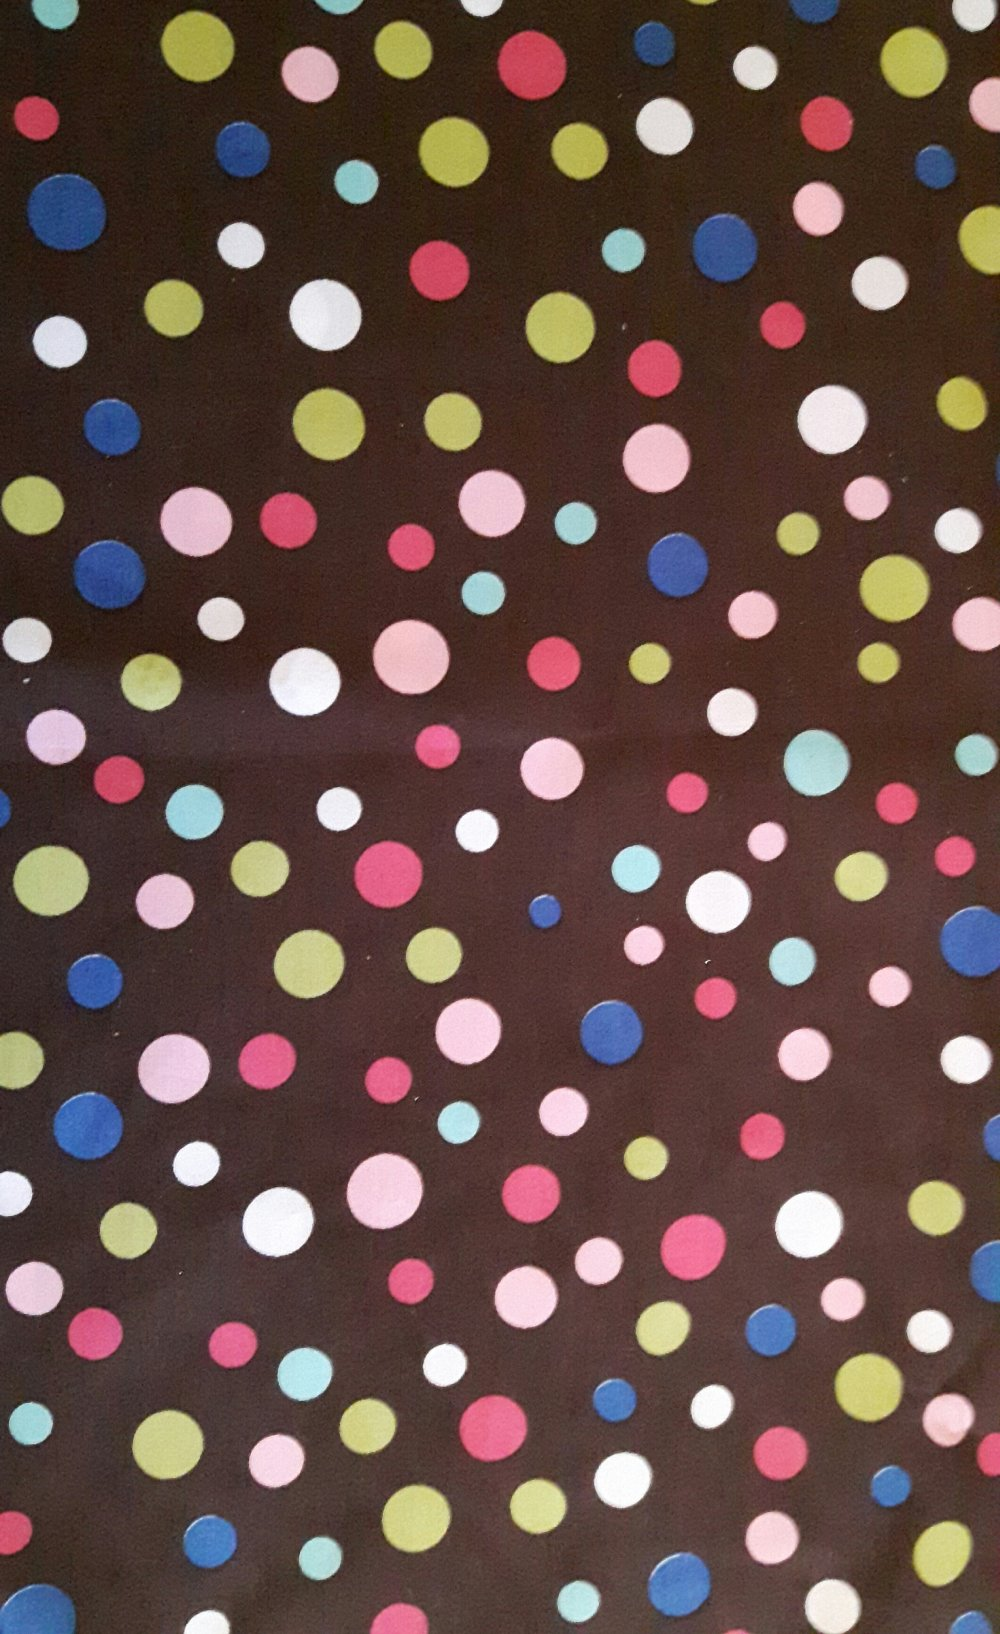 COUPON TISSU MARRON POIS MULTICOLORES  coton